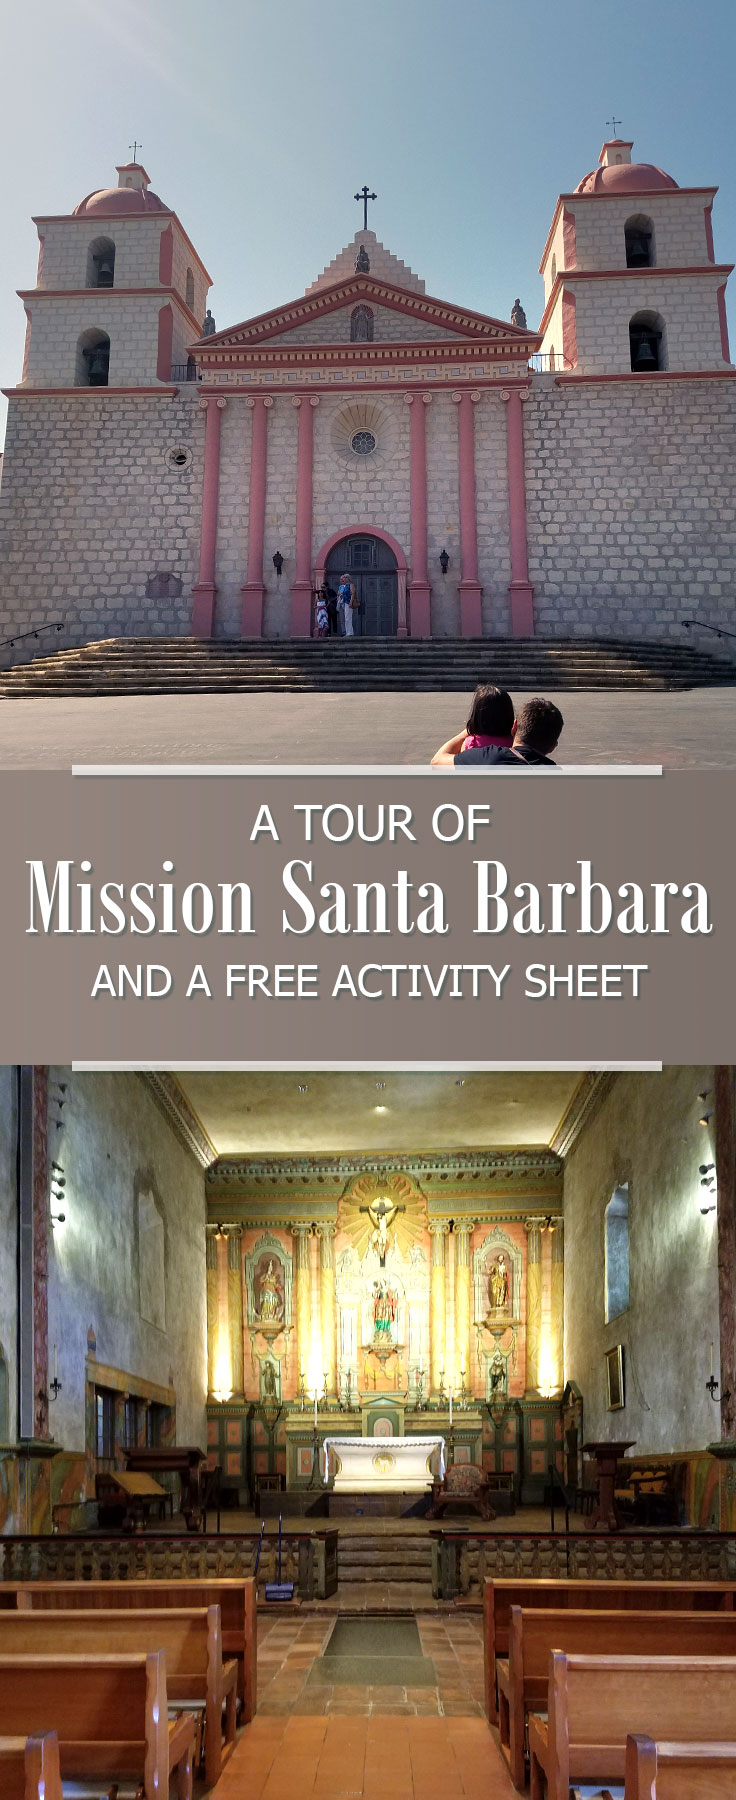 santa barbara mission and pictures